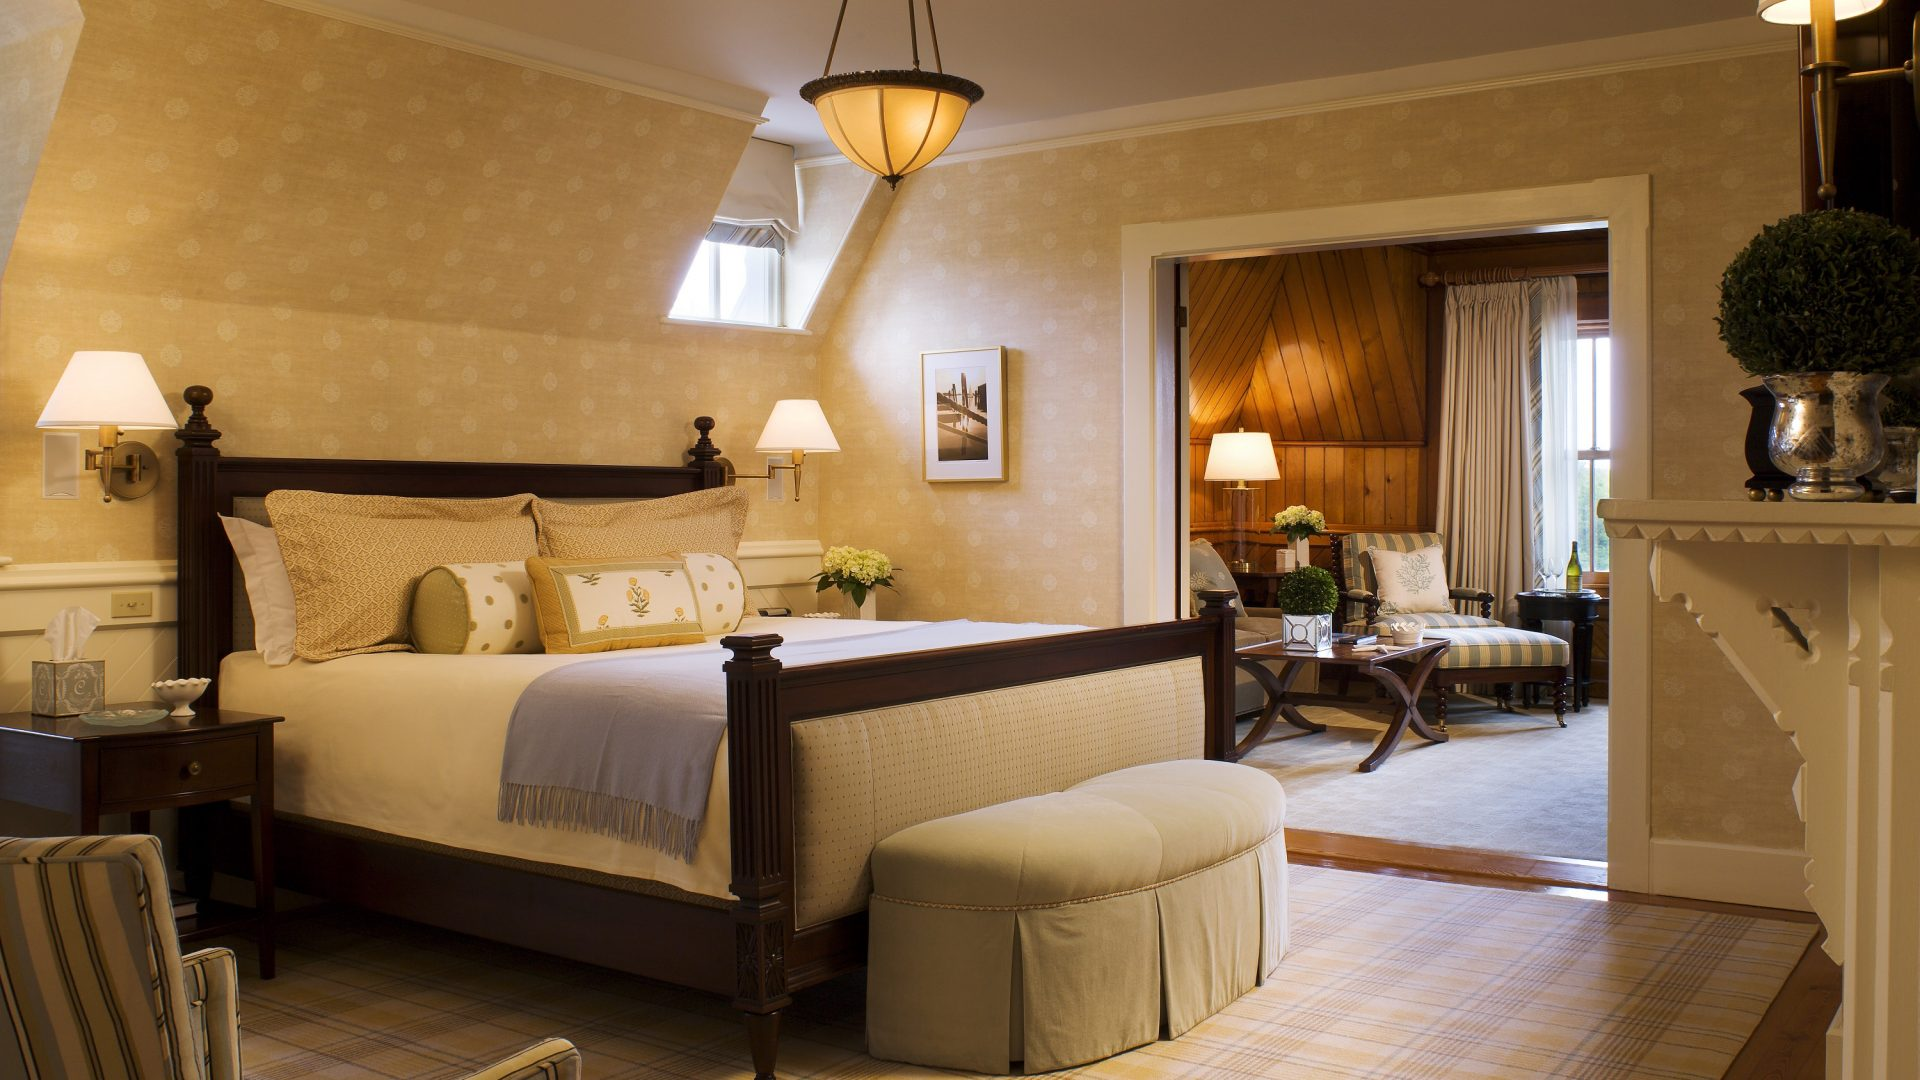 The Lighthouse Suite Bedroom at the Castle Hill Inn and Resort